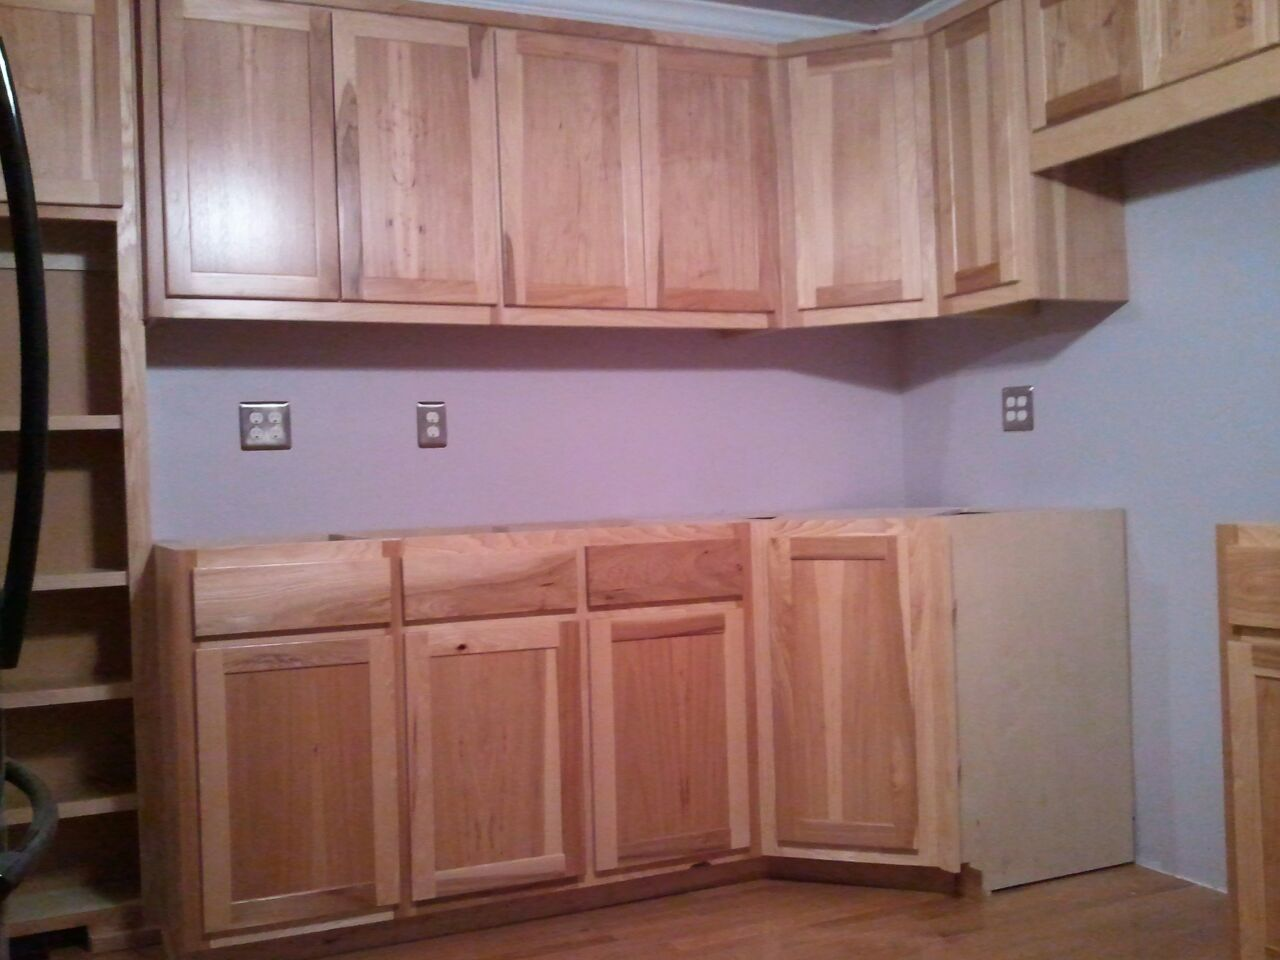 Set of Calico Hickory cabinets. Shaker style doors with clear finish.